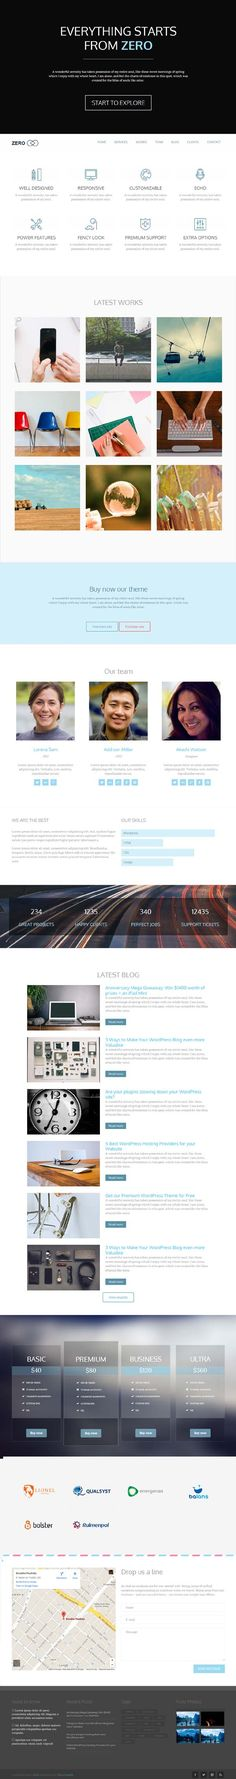 Zero – Multi-Purpose WordPress Theme #HTML5themes #responsivethemes #wordpressthemes